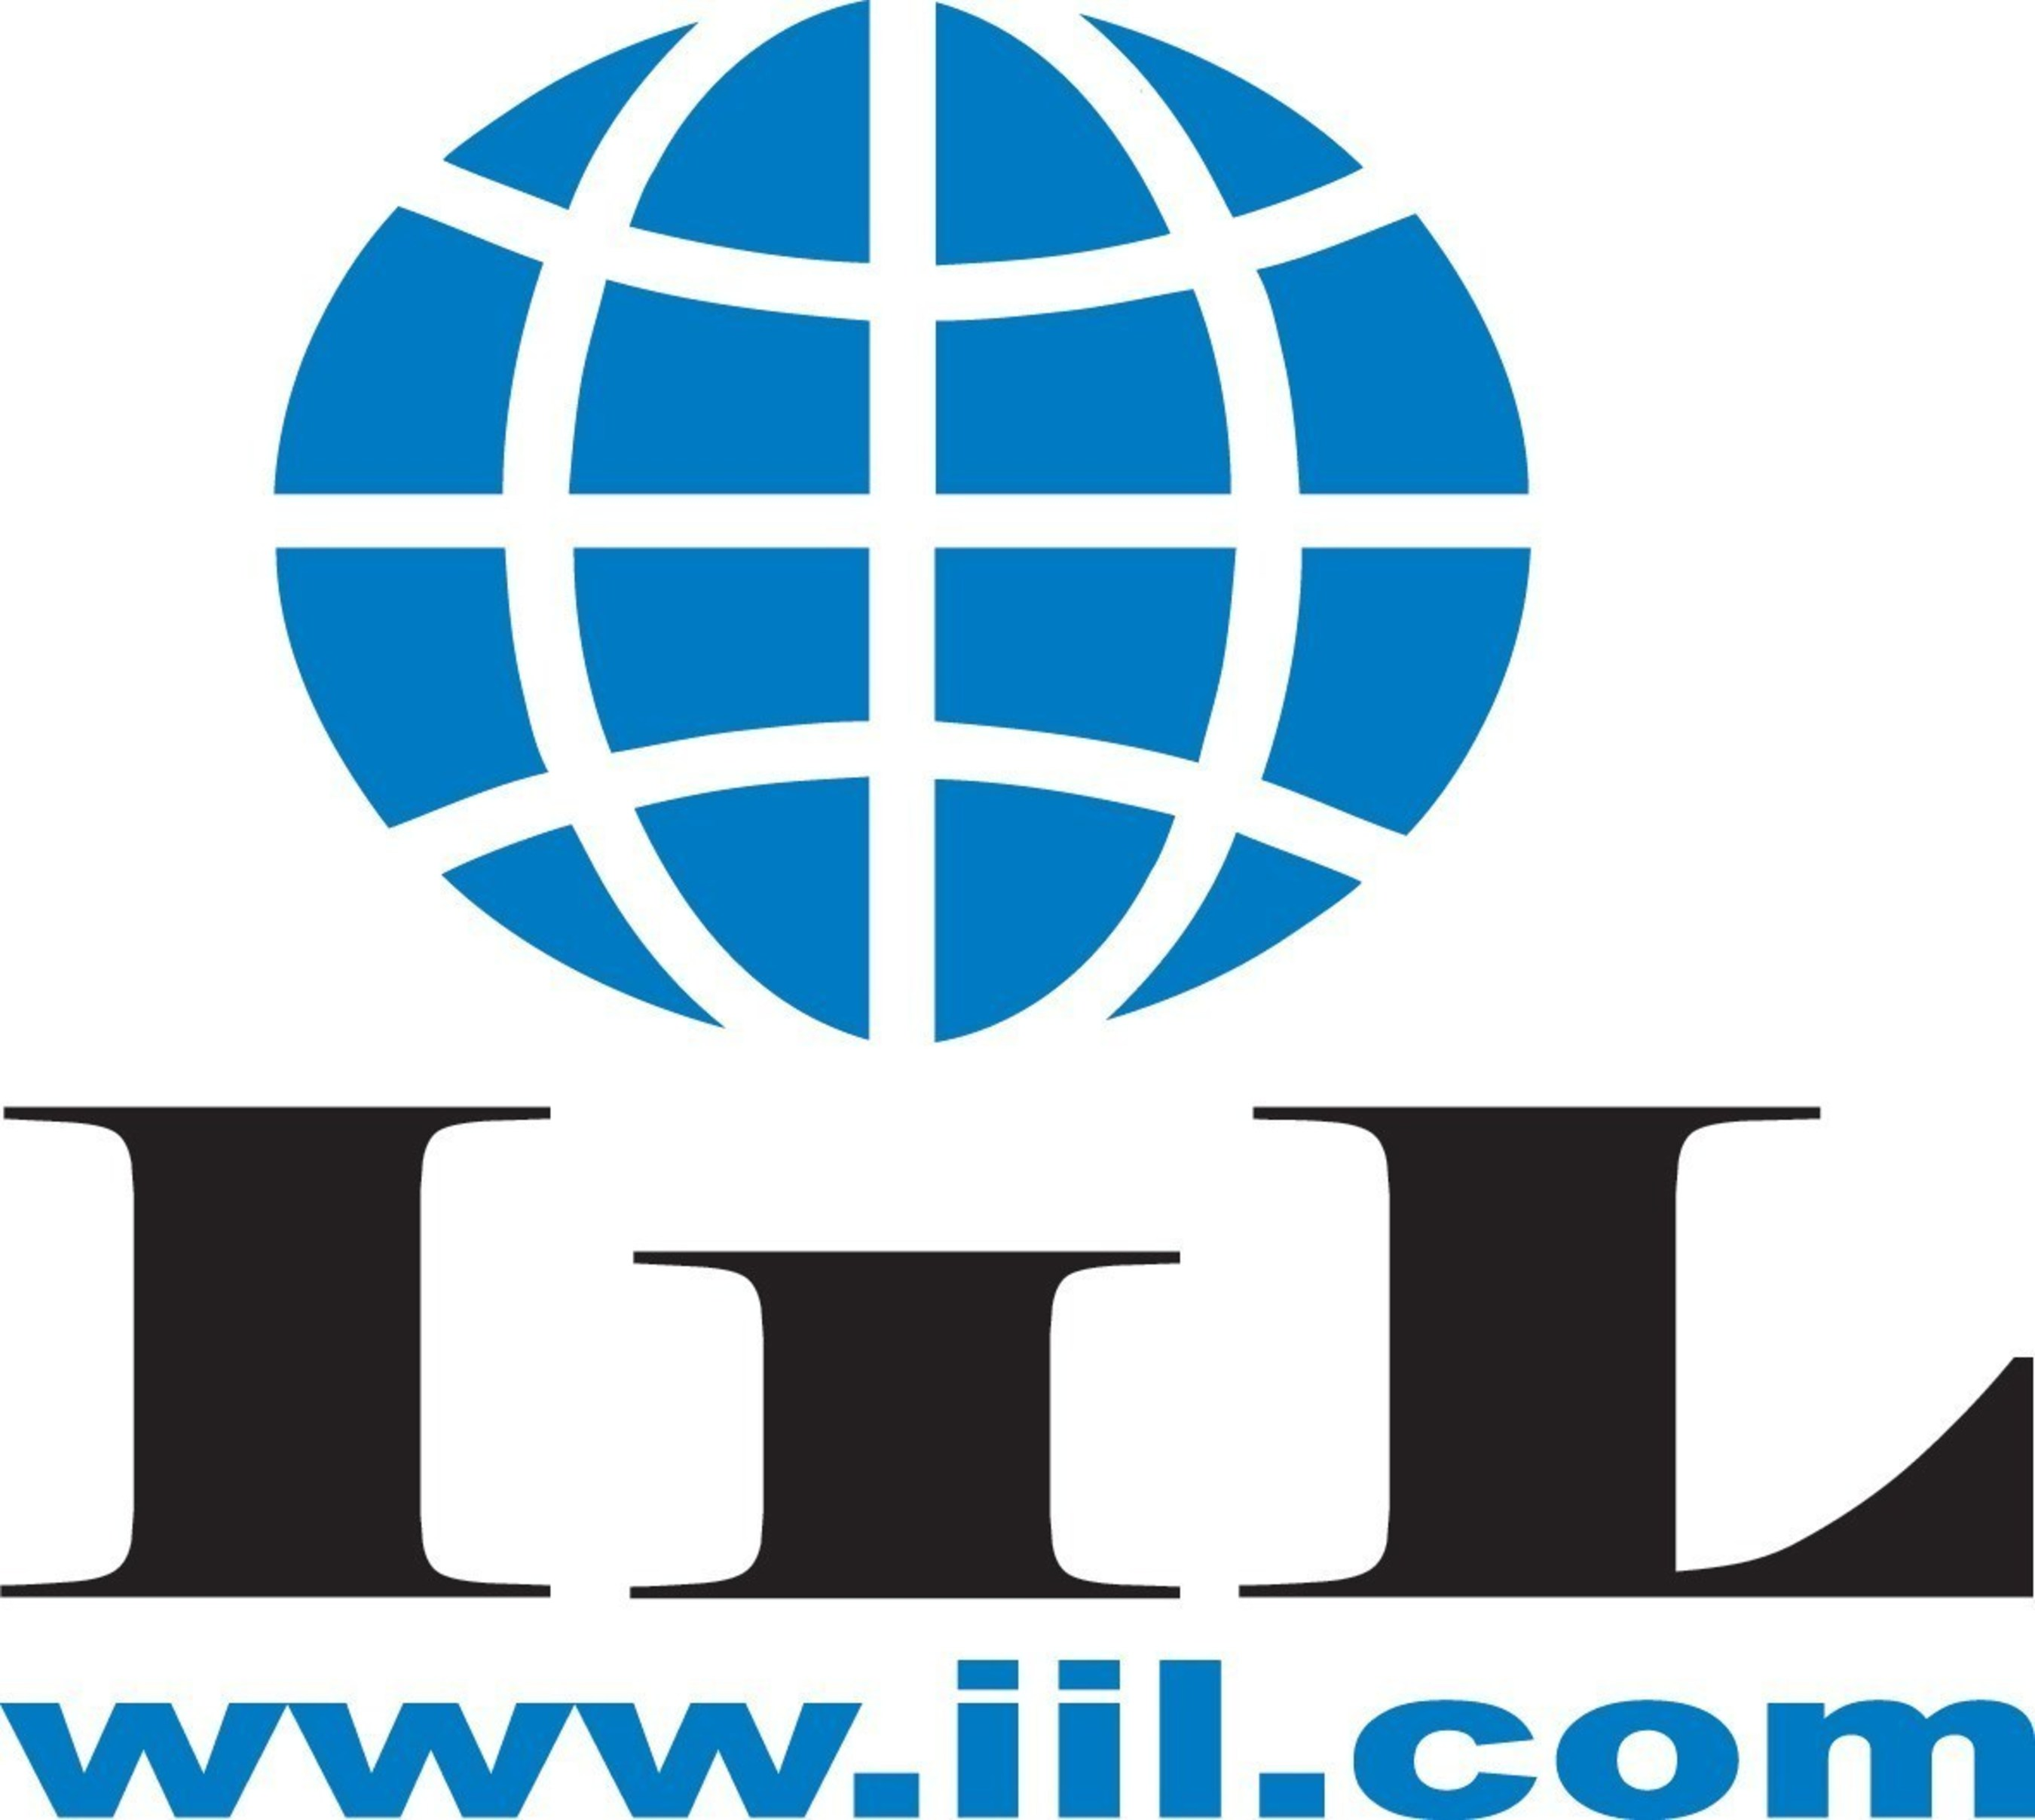 IIL is the host of the Agile and Scrum virtual conference.